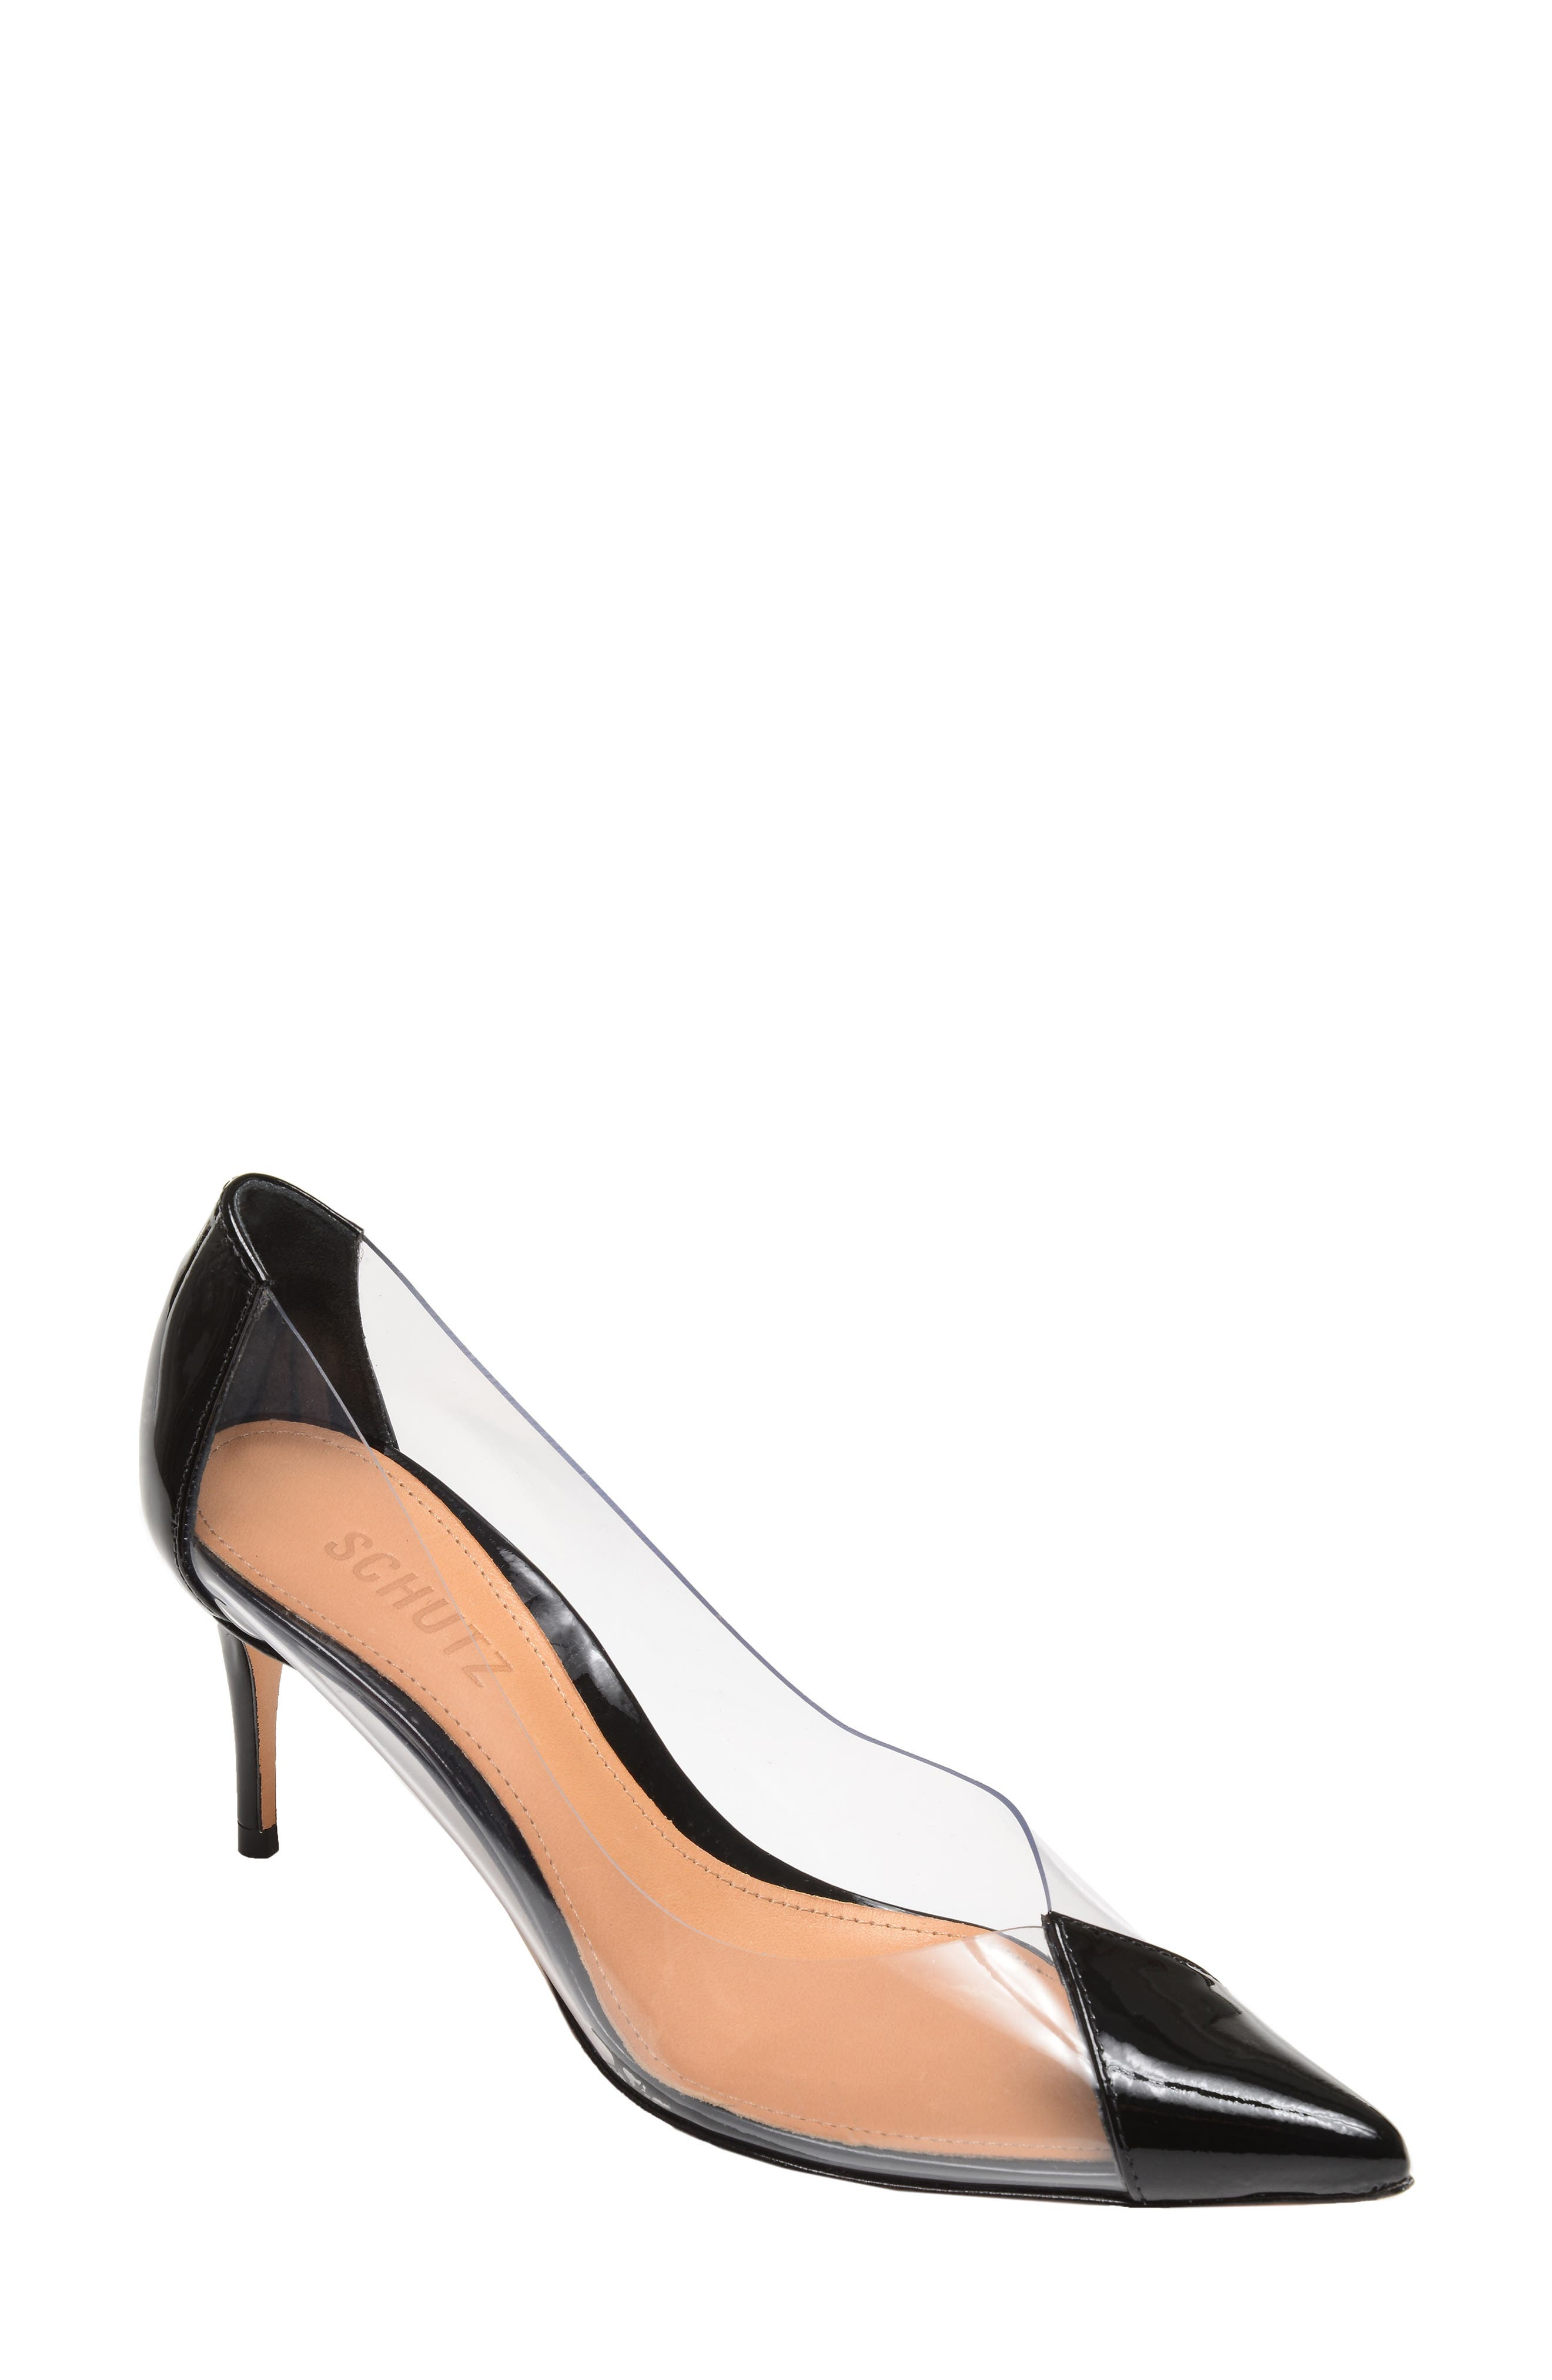 SCHUTZ, Garthy Pointy Toe Pump, Main thumbnail 1, color, BLACK PATENT LEATHER